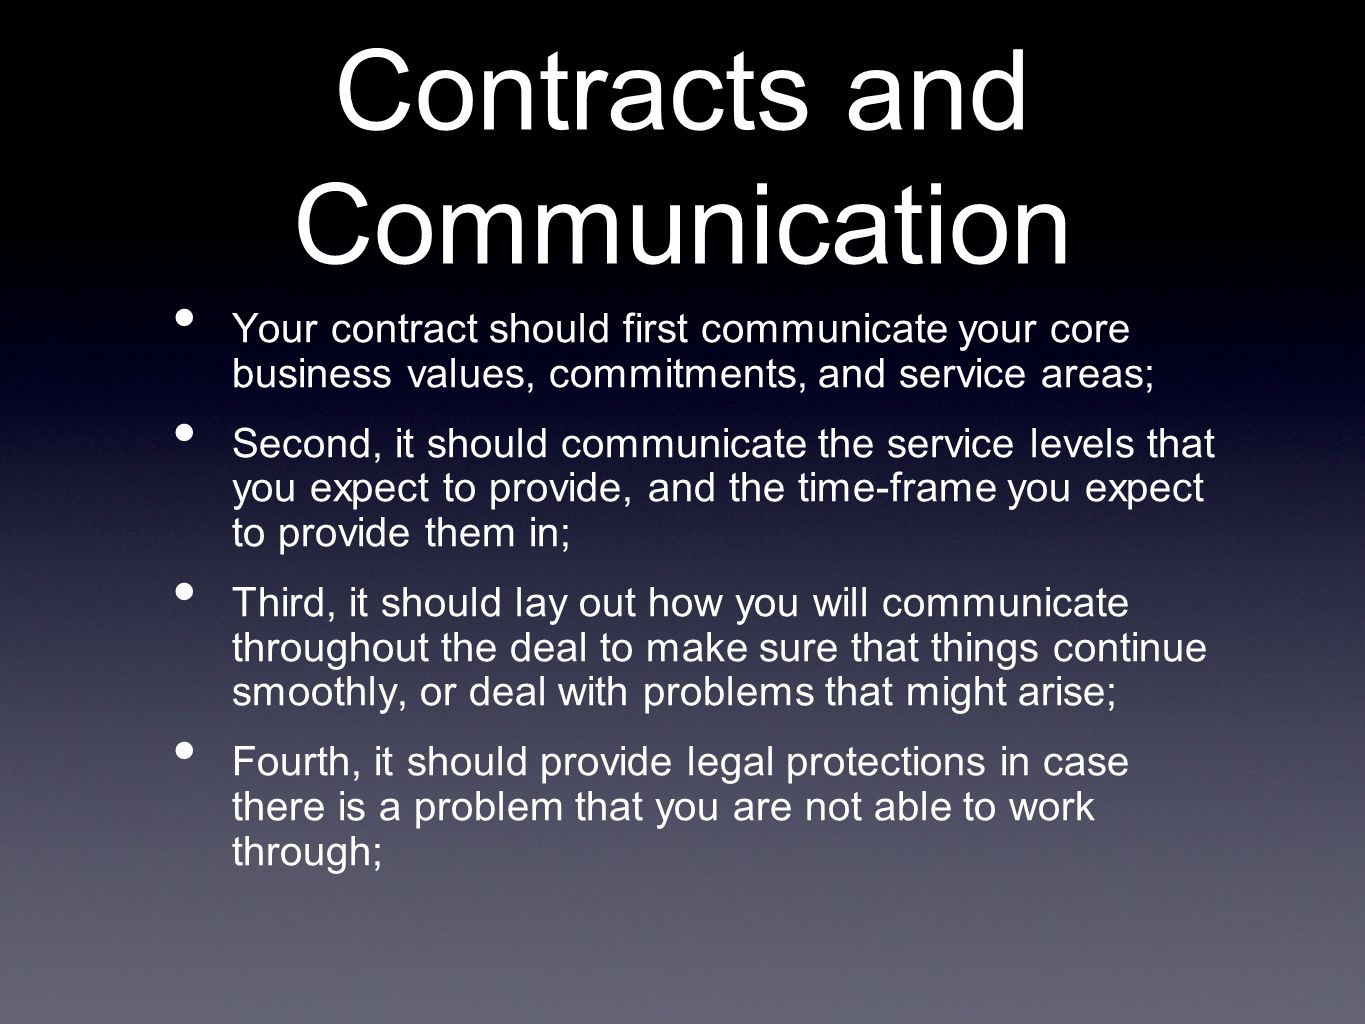 Contracts and Communication Your contract should first communicate your core business values, commitments, and service areas; Second, it should communicate the service levels that you expect to provide, and the time-frame you expect to provide them in; Third, it should lay out how you will communicate throughout the deal to make sure that things continue smoothly, or deal with problems that might arise; Fourth, it should provide legal protections in case there is a problem that you are not able to work through;